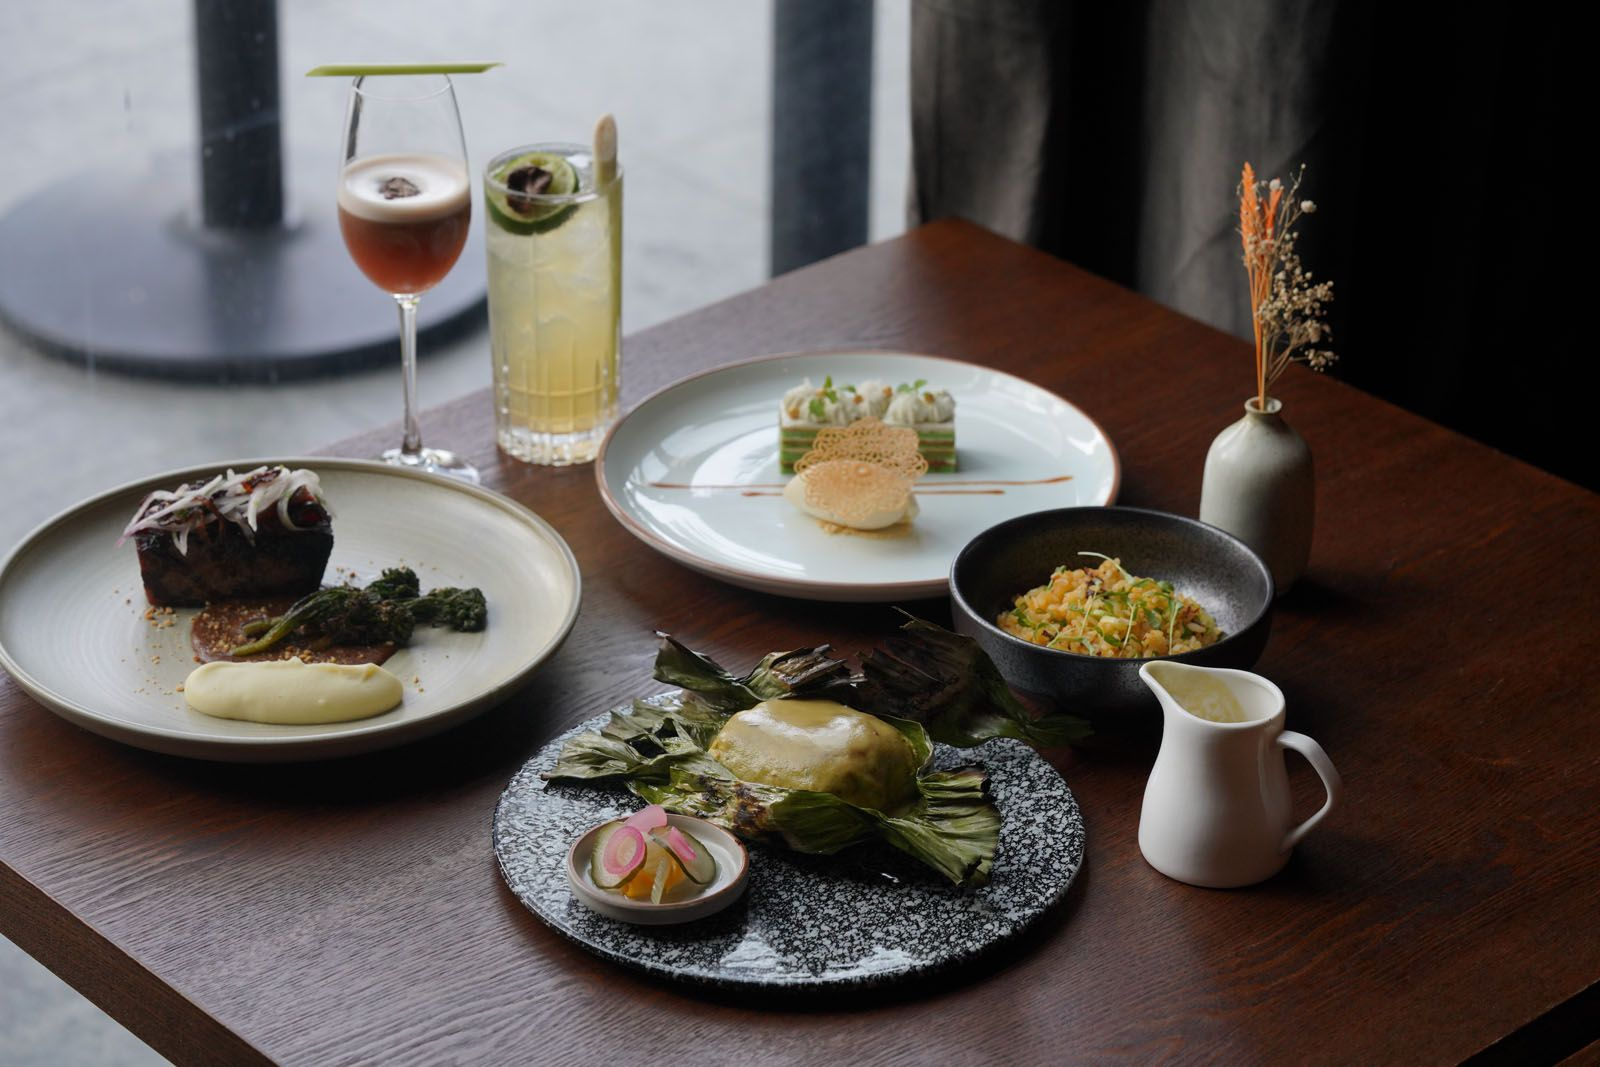 National Day 2020: Singapore Restaurants That Serve Modern Interpretations of Our Favourite Local Food